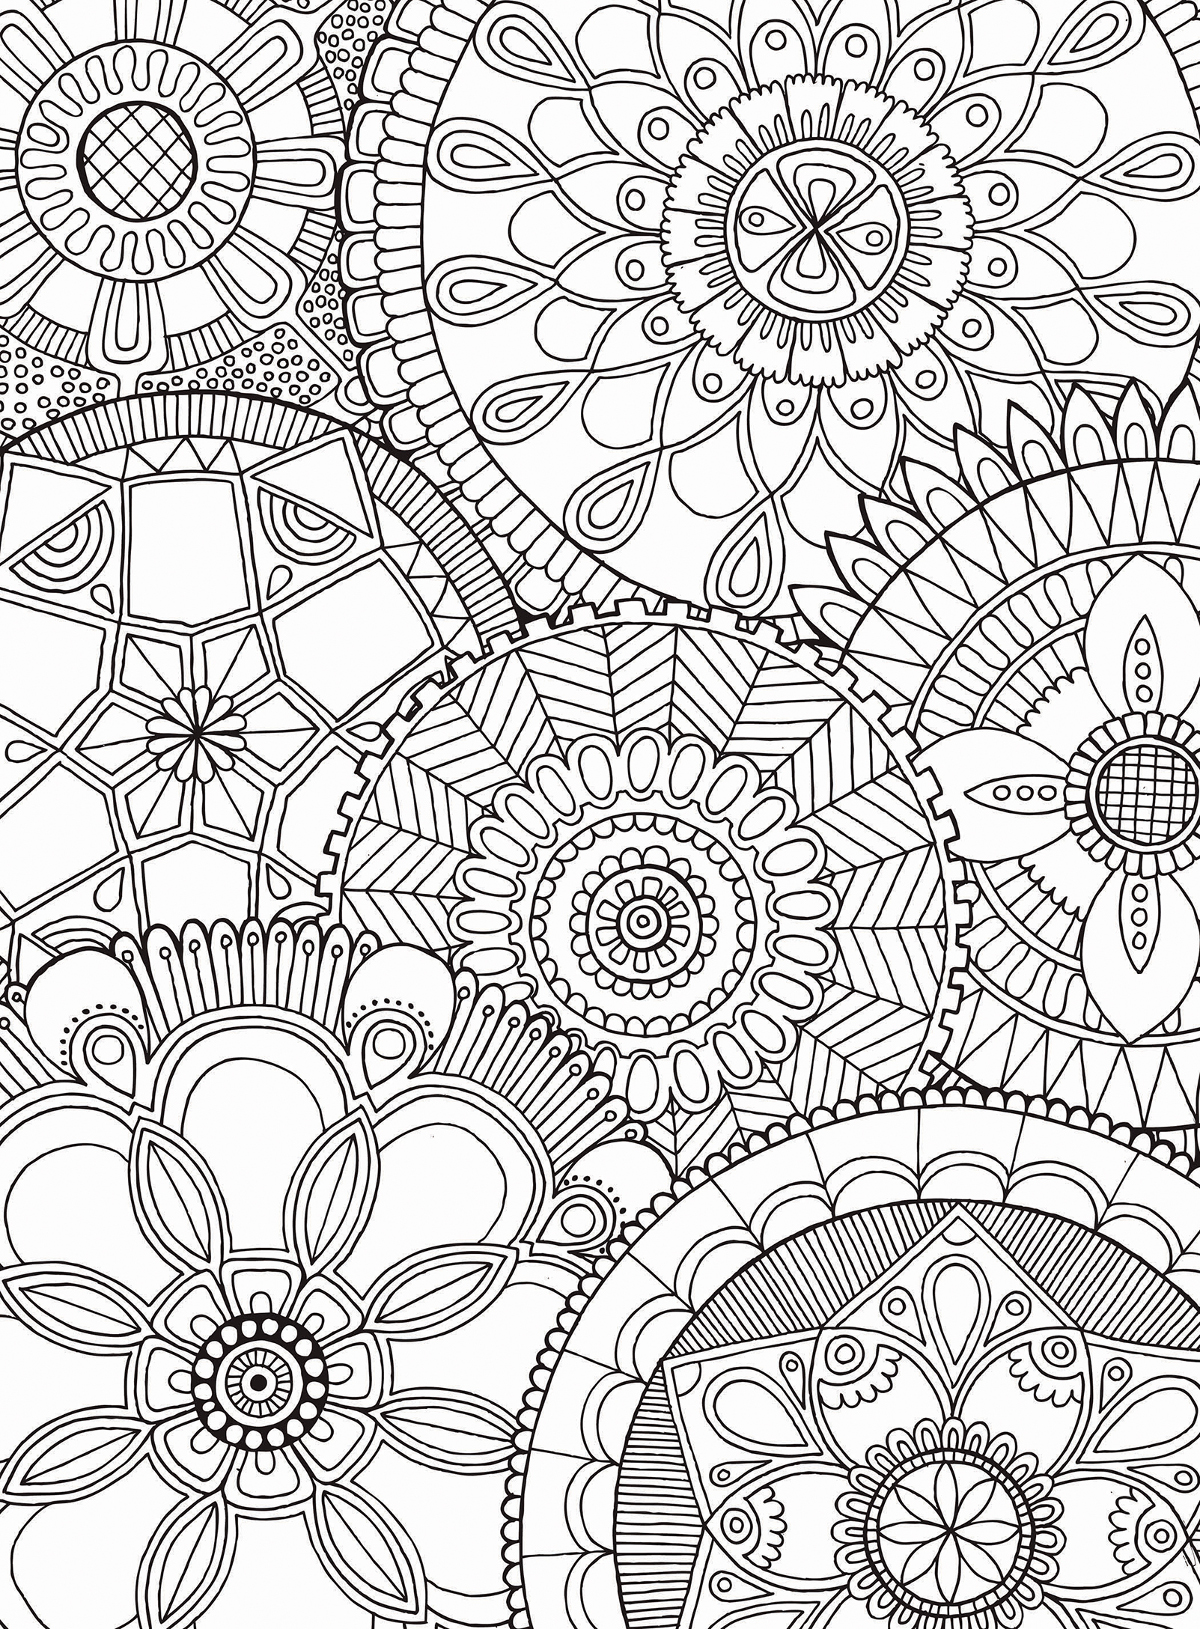 Mandala collage jigsaw puzzle - Coloriage puzzle ...